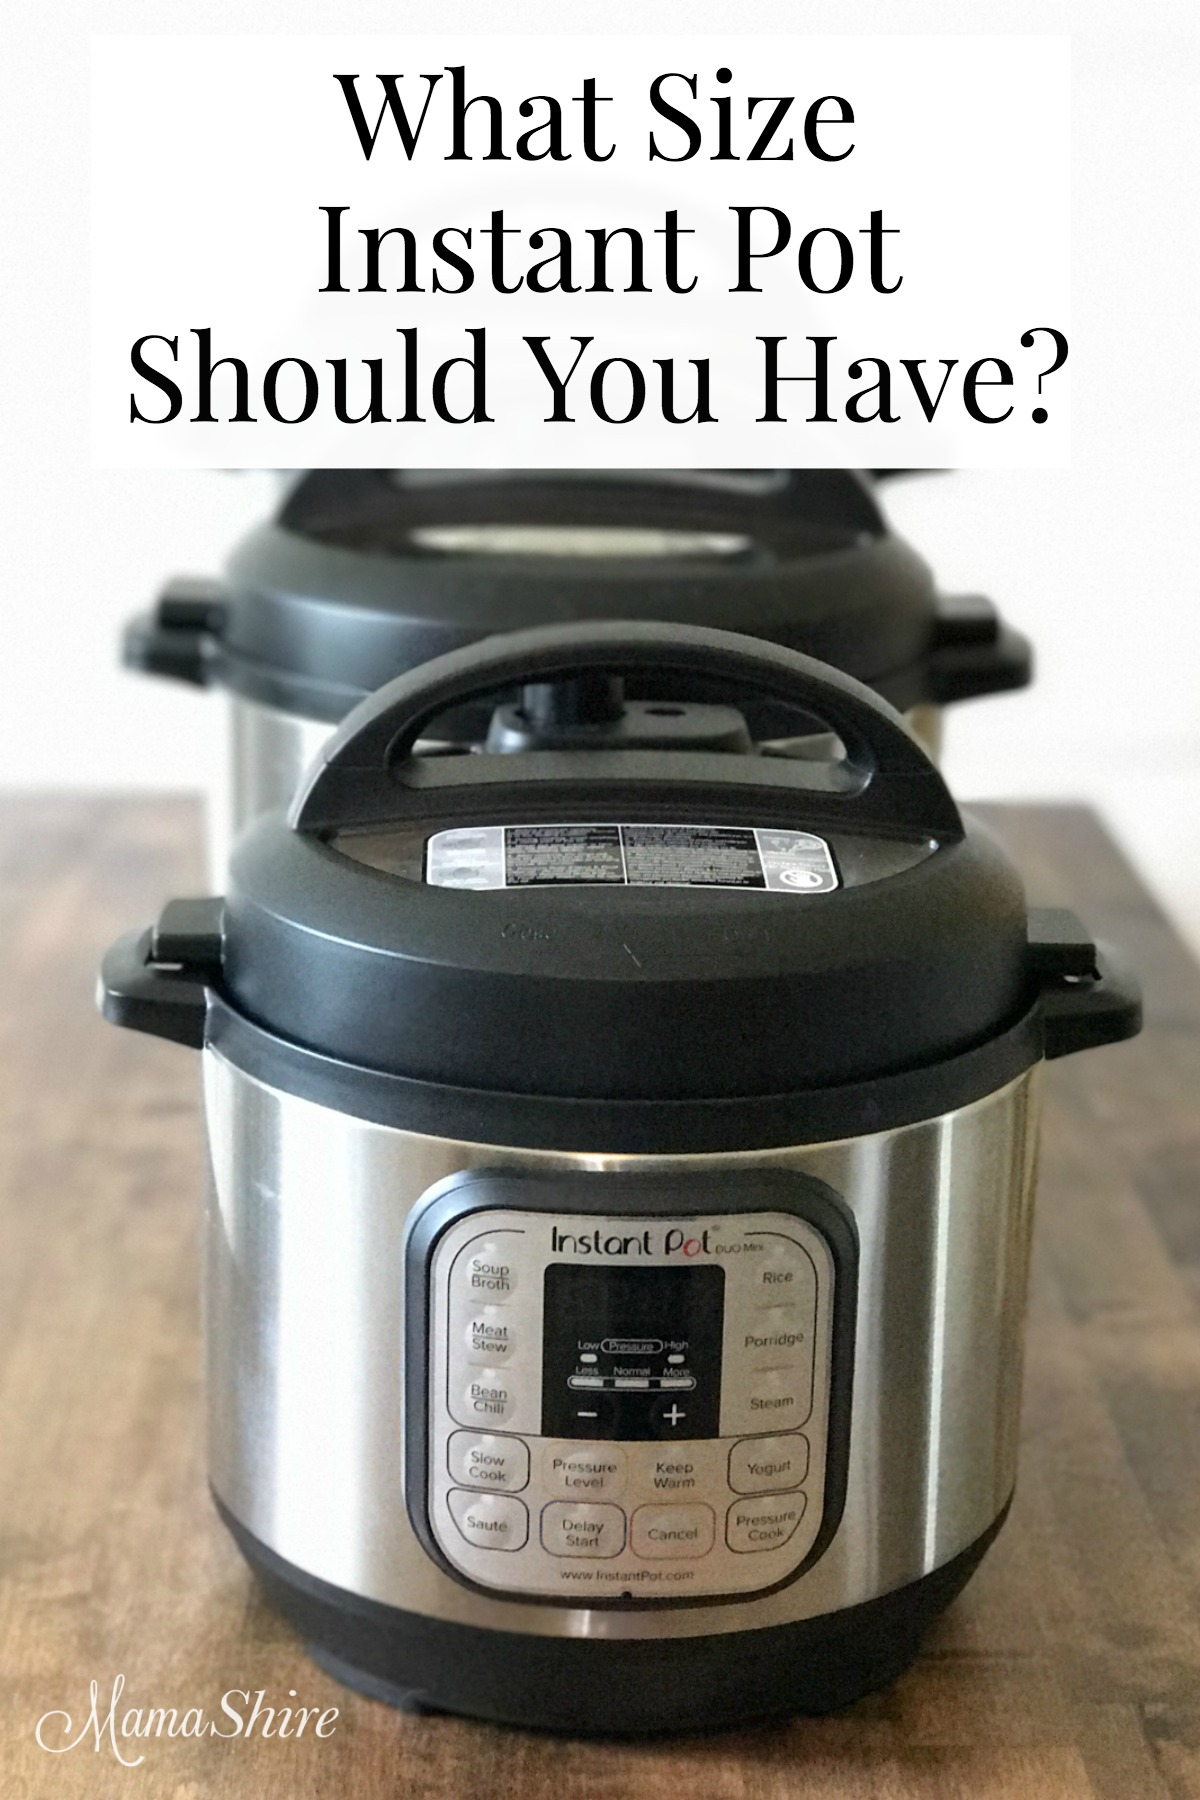 Which size Instant Pot should you have?